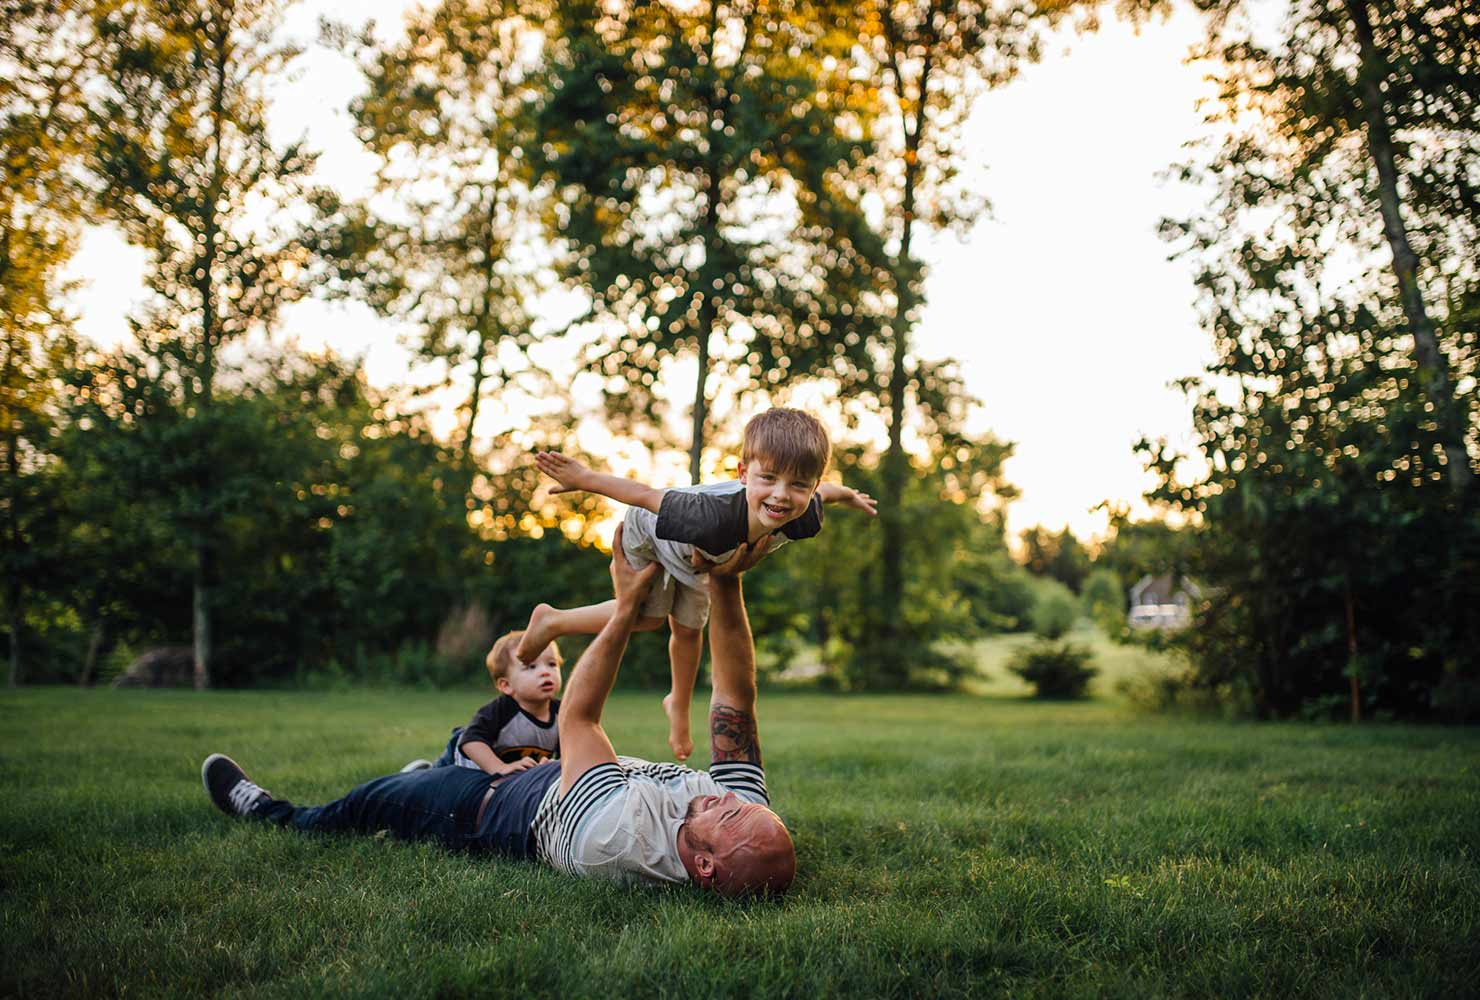 sibling photo ideas fun with dad